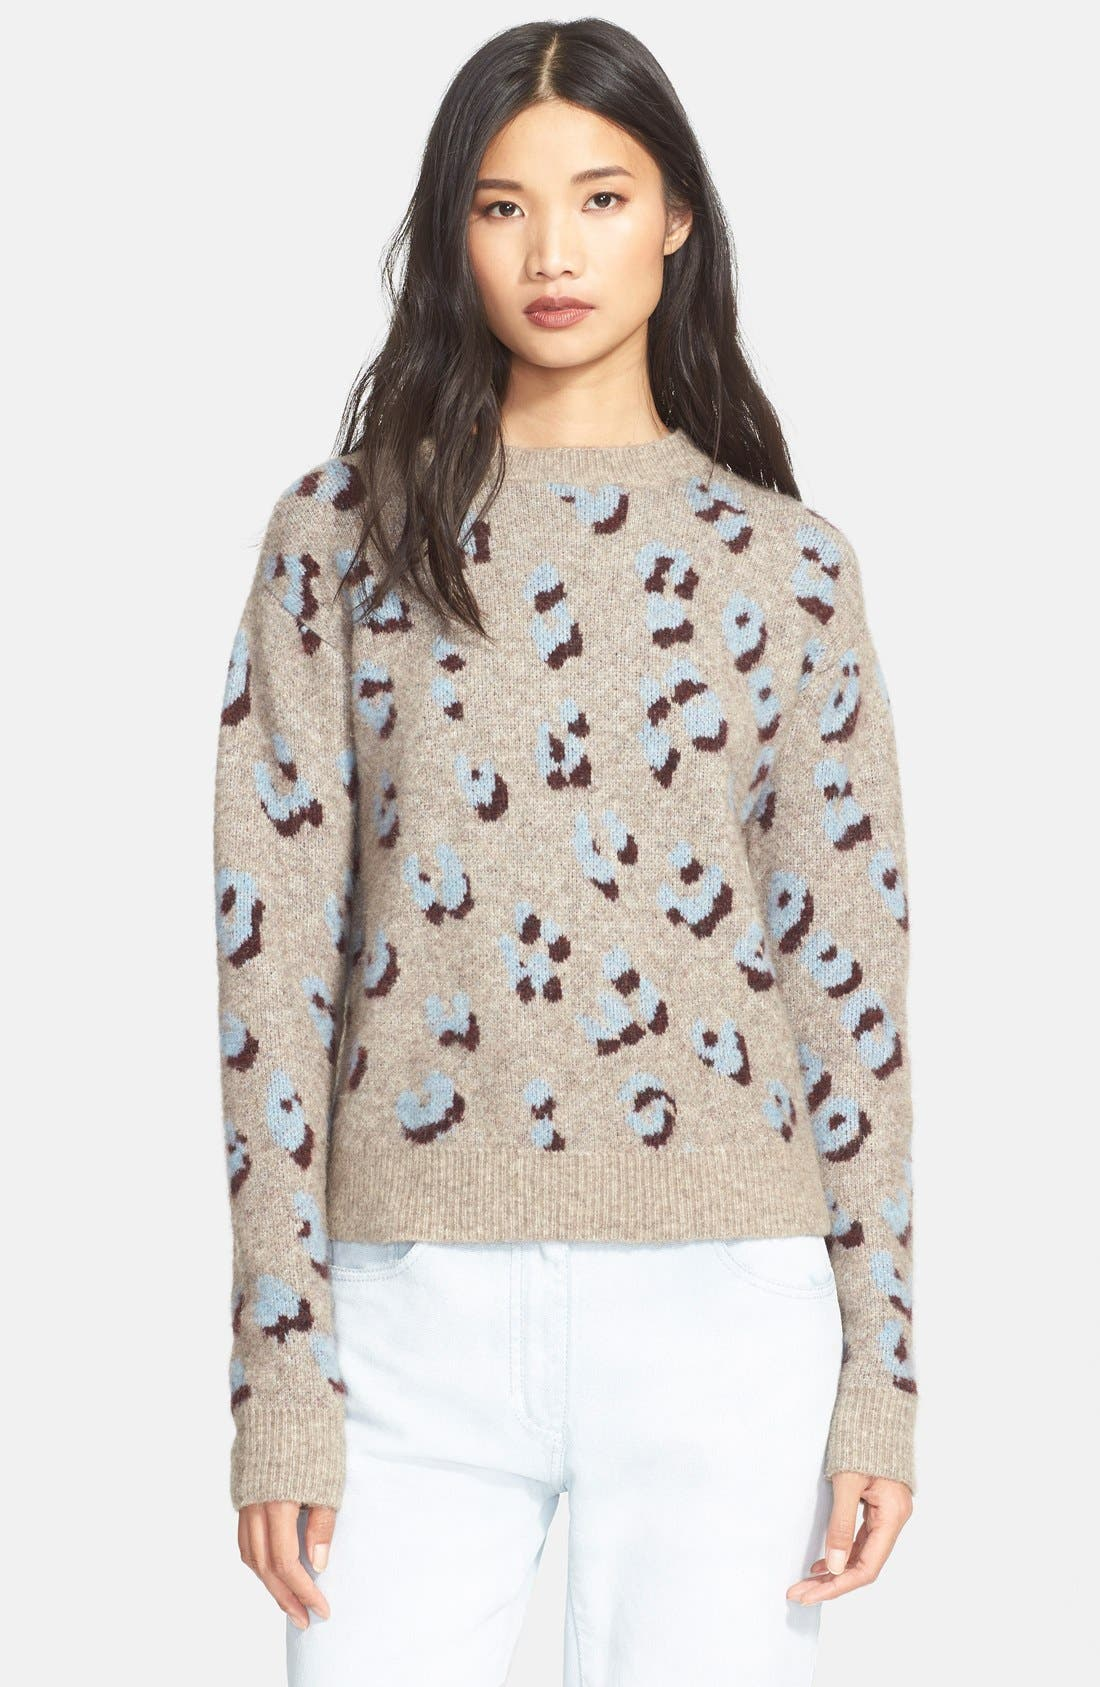 Alternate Image 1 Selected - 3.1 Phillip Lim Leopard Jacquard Sweater